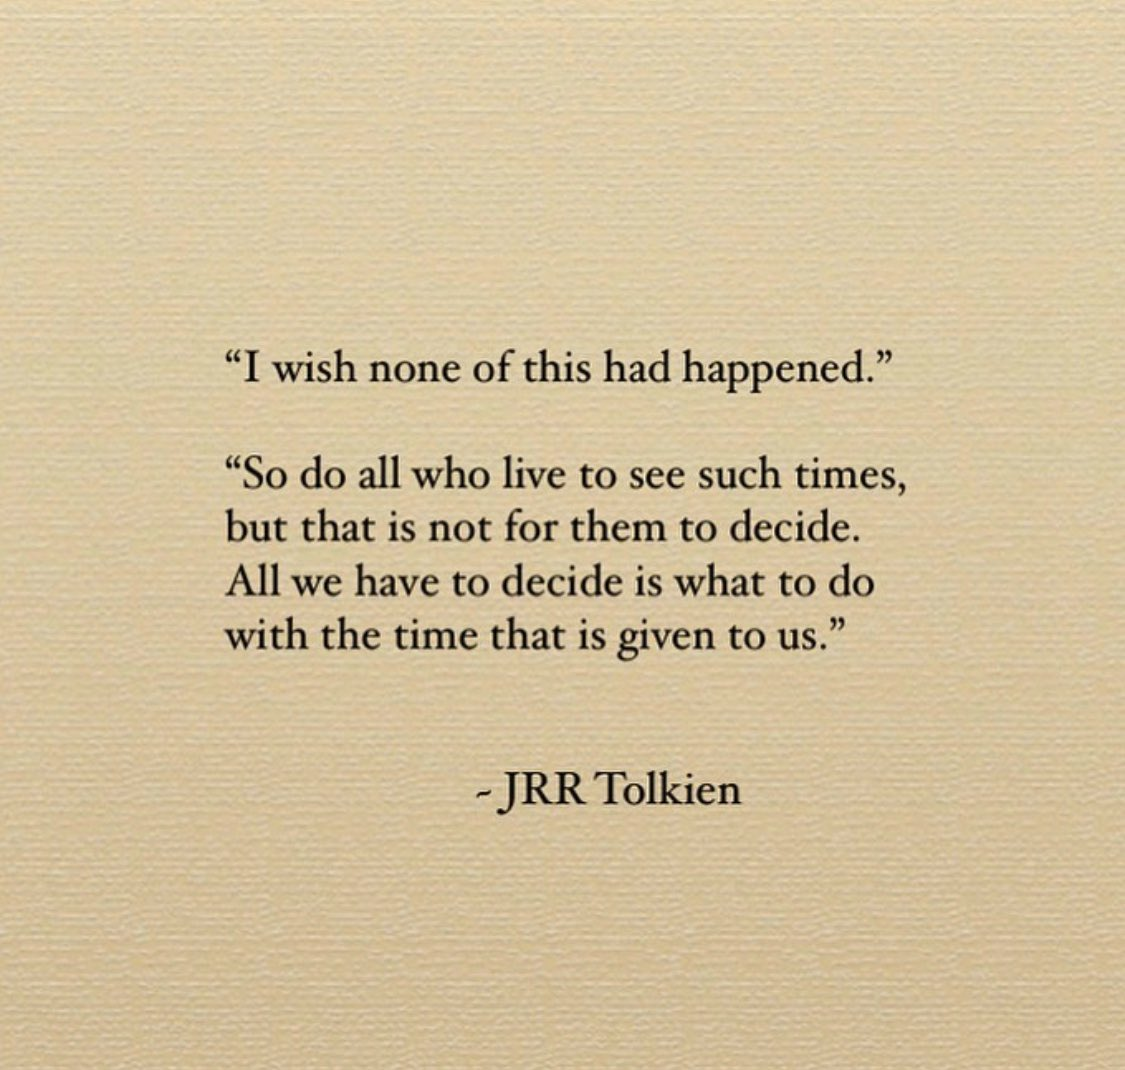 That Tolkien fella knew a thing or two. #covid19 #time pic.twitter.com/7Lkrnqh4kC